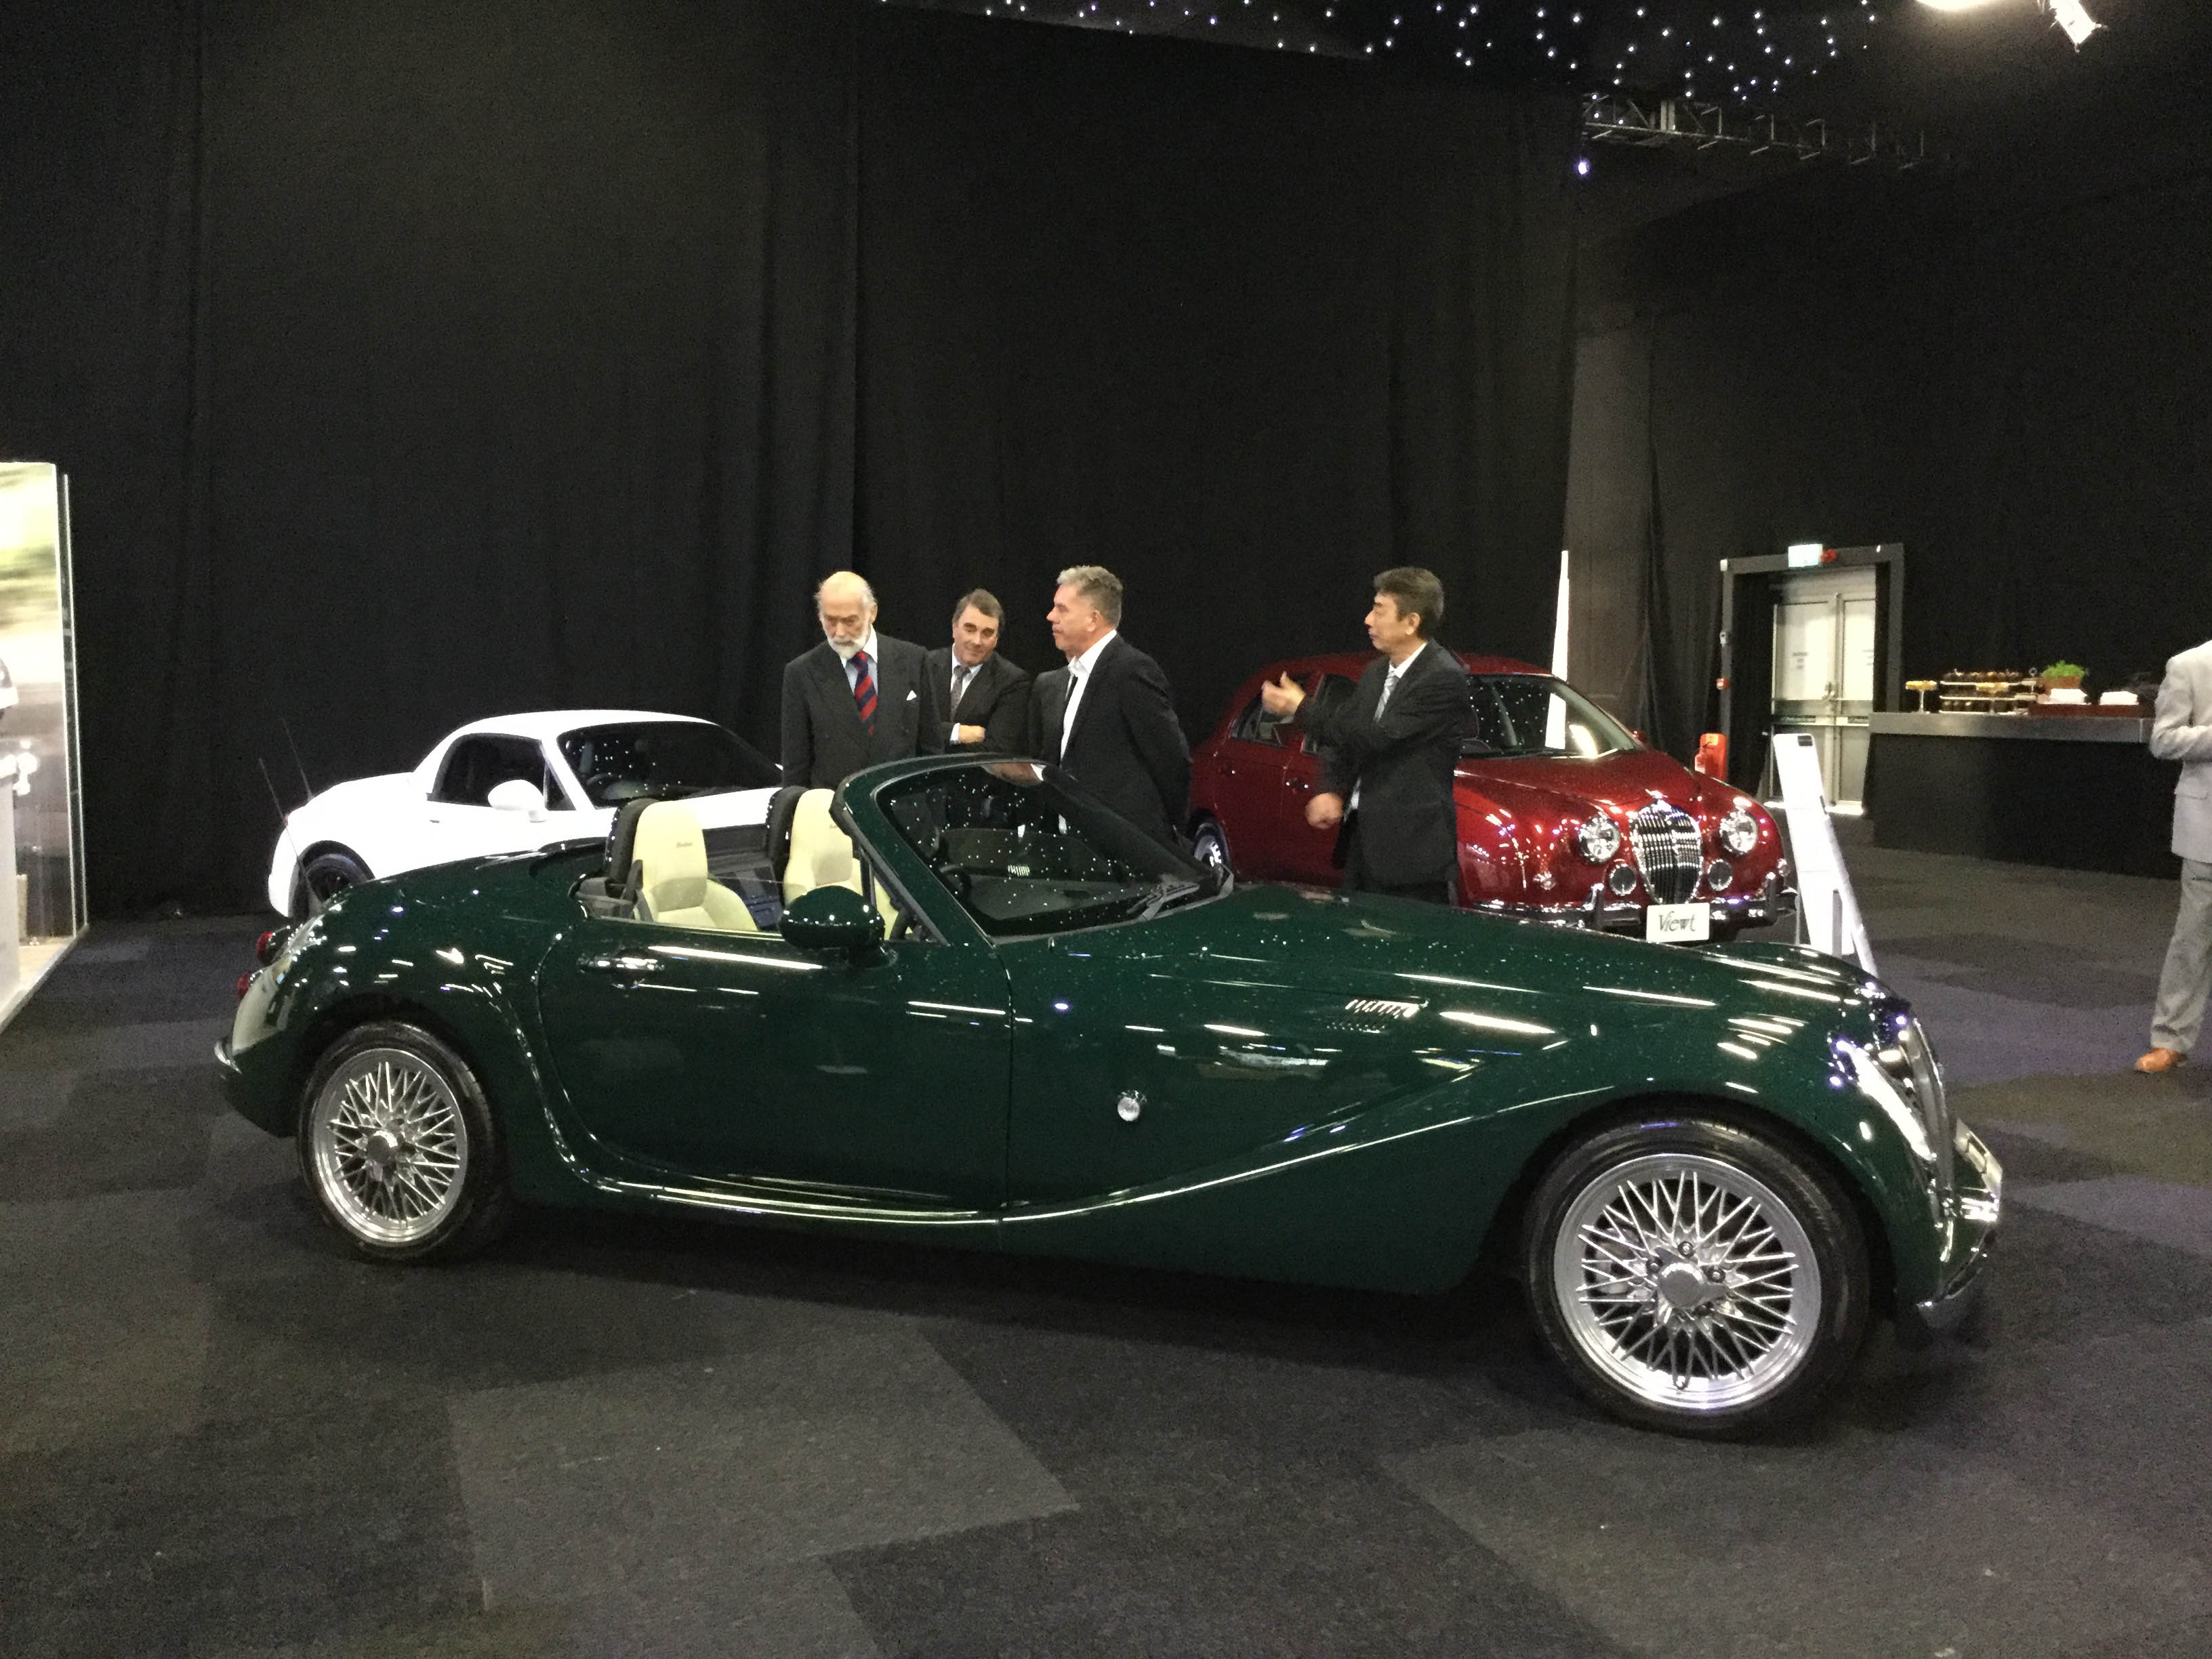 The Prince Michael of Kent talking about the Mitsuoka at the London Motor Show